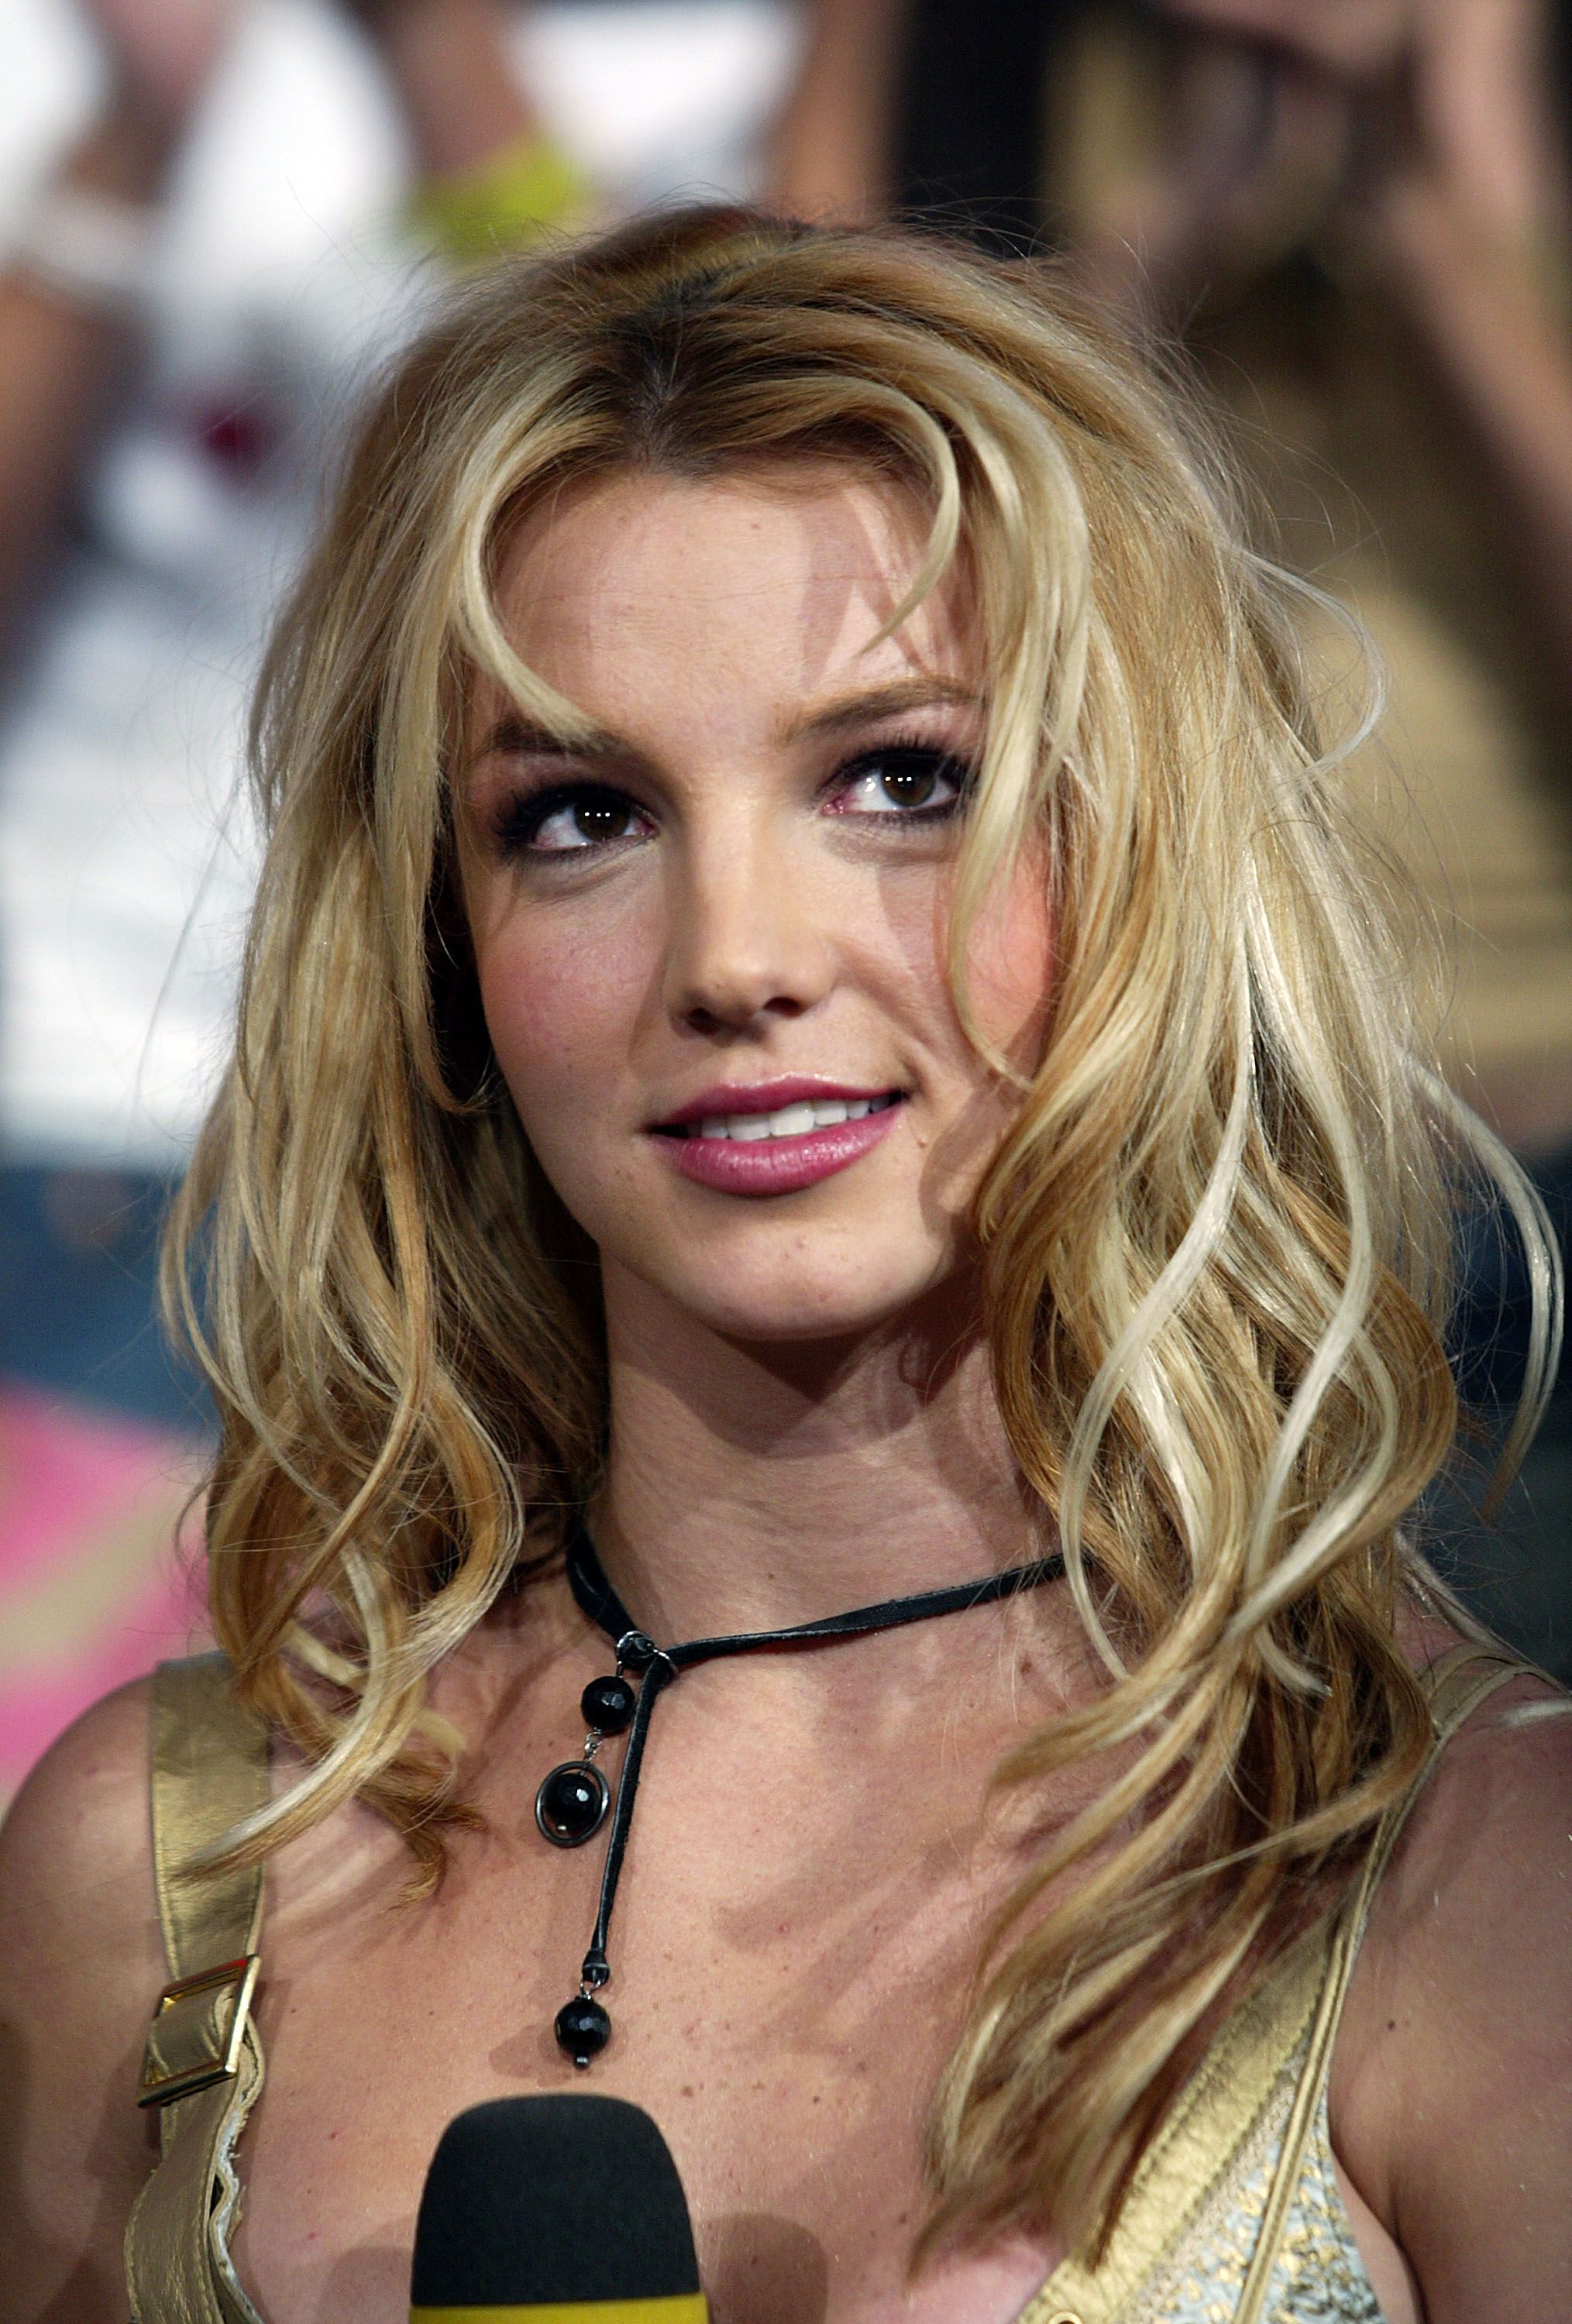 """Britney Spears Calls for an End to Her Conservatorship: """"I Just Want My Life Back"""""""